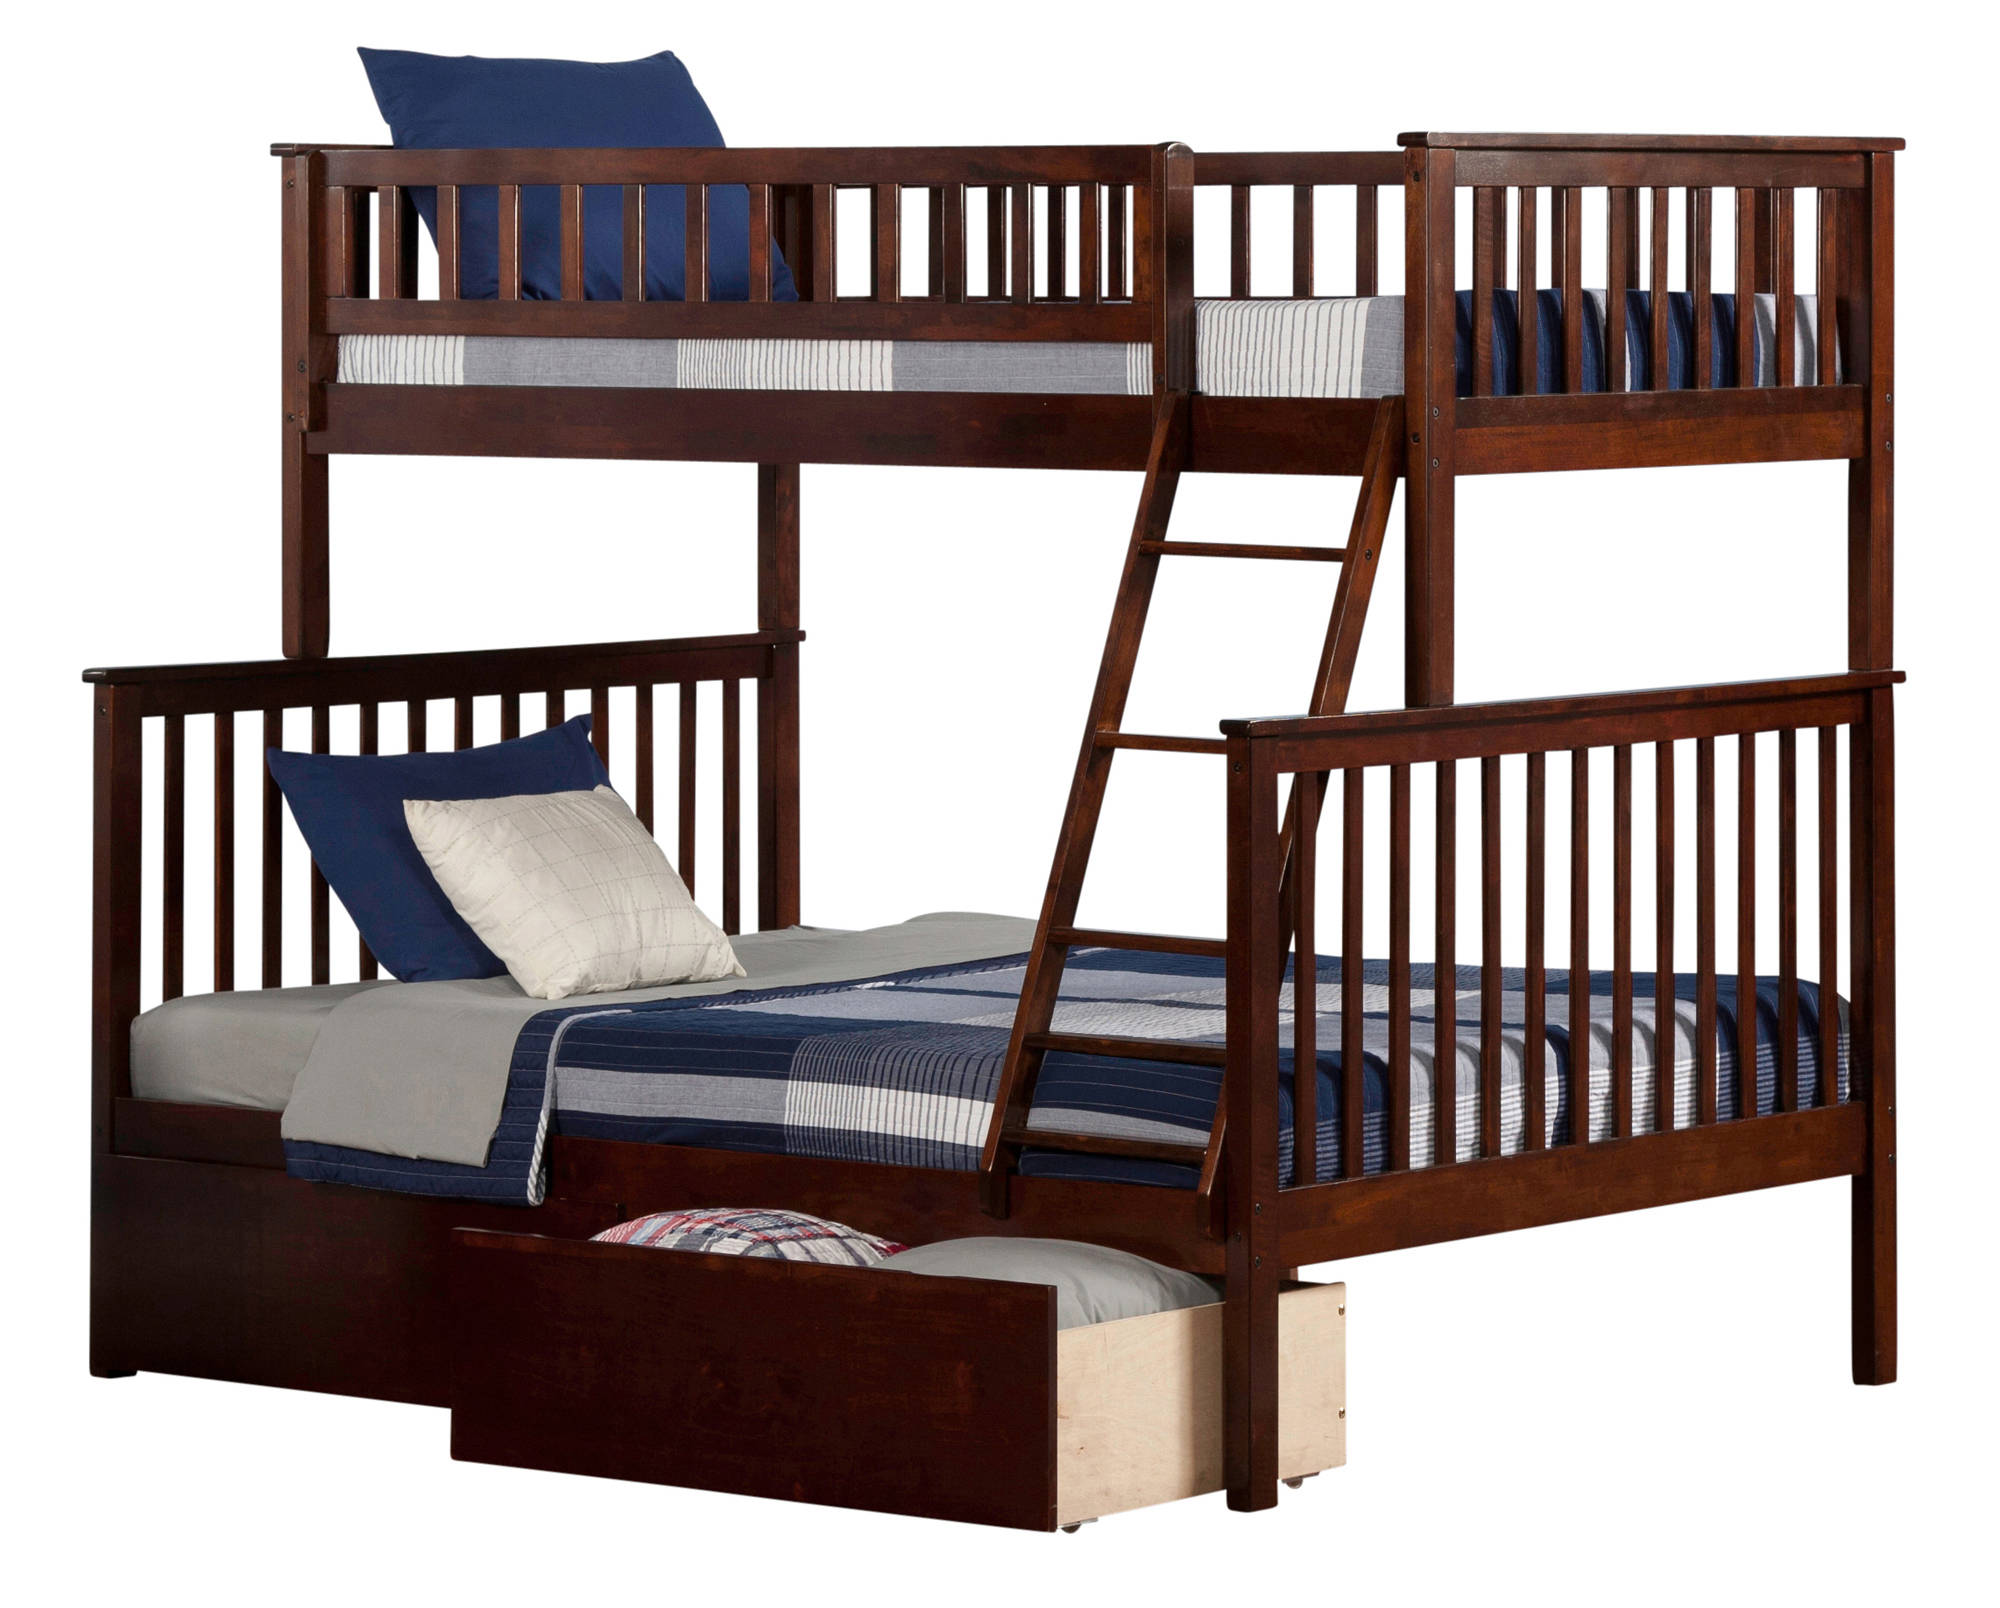 Atlantic furniture woodland walnut twin over full urban for Urban home beds